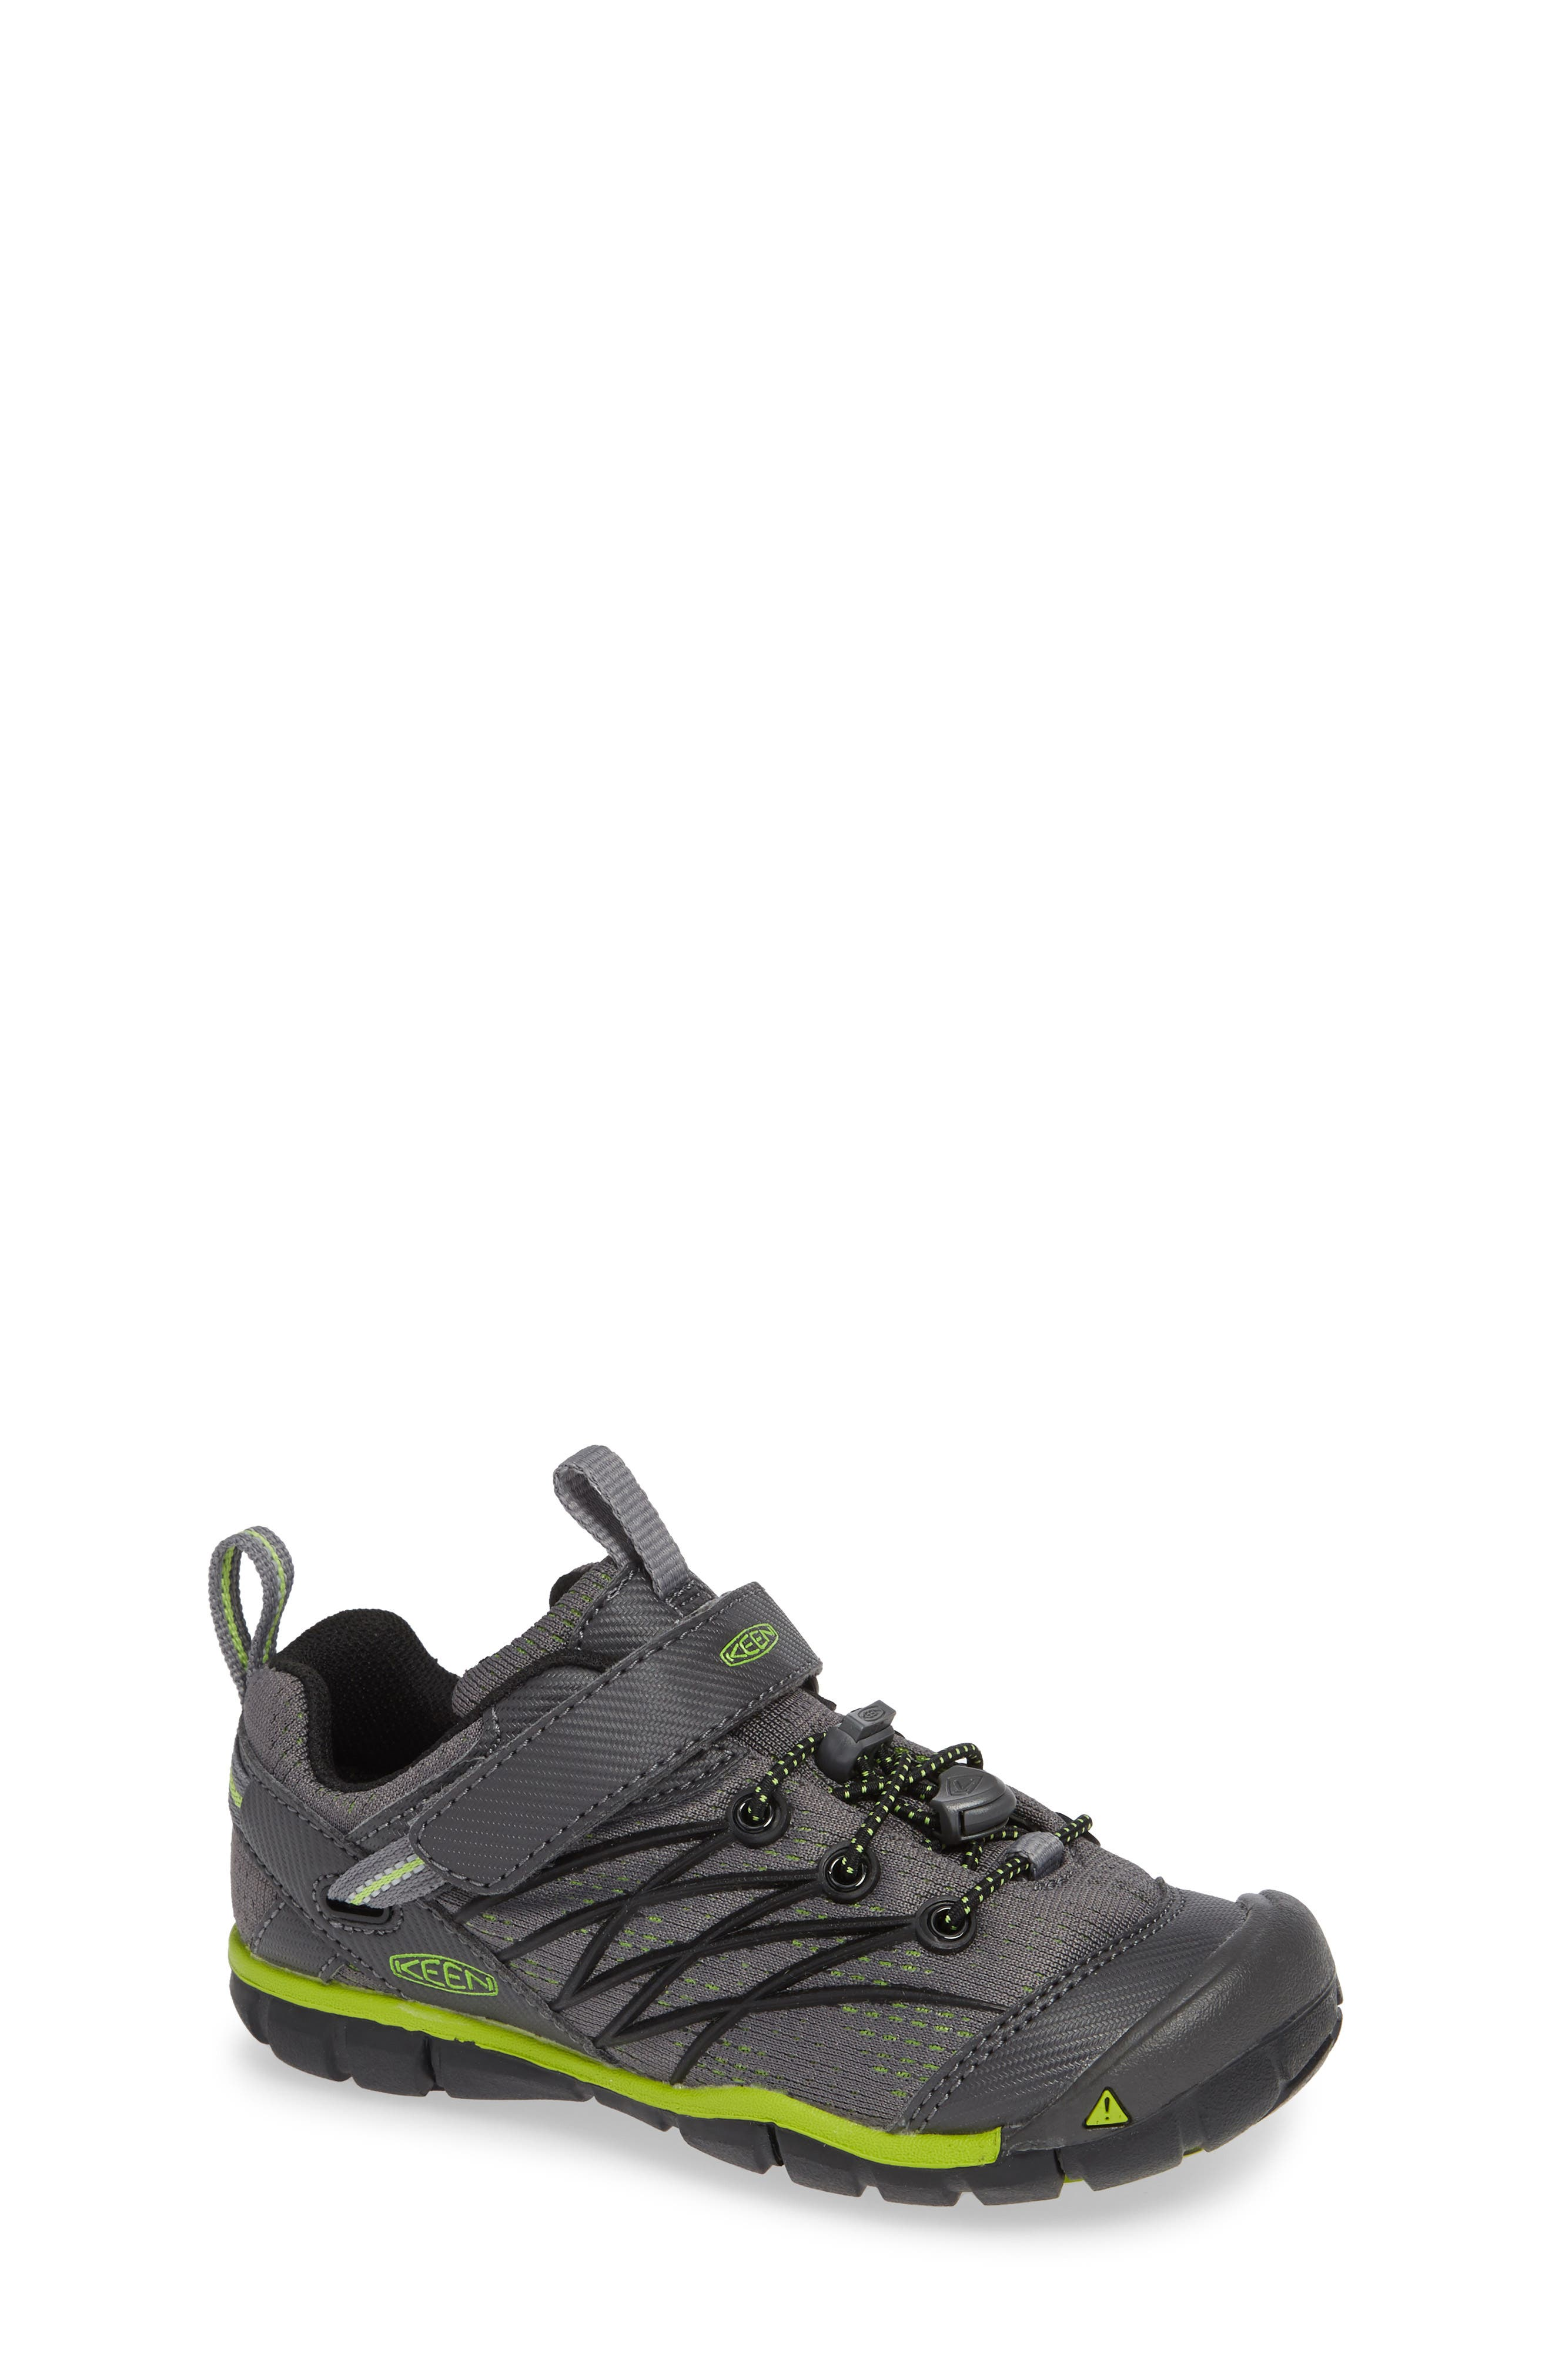 KEEN 'Chandler CNX' Water Repellent Sneaker, Main, color, MAGNET/ GREENERY